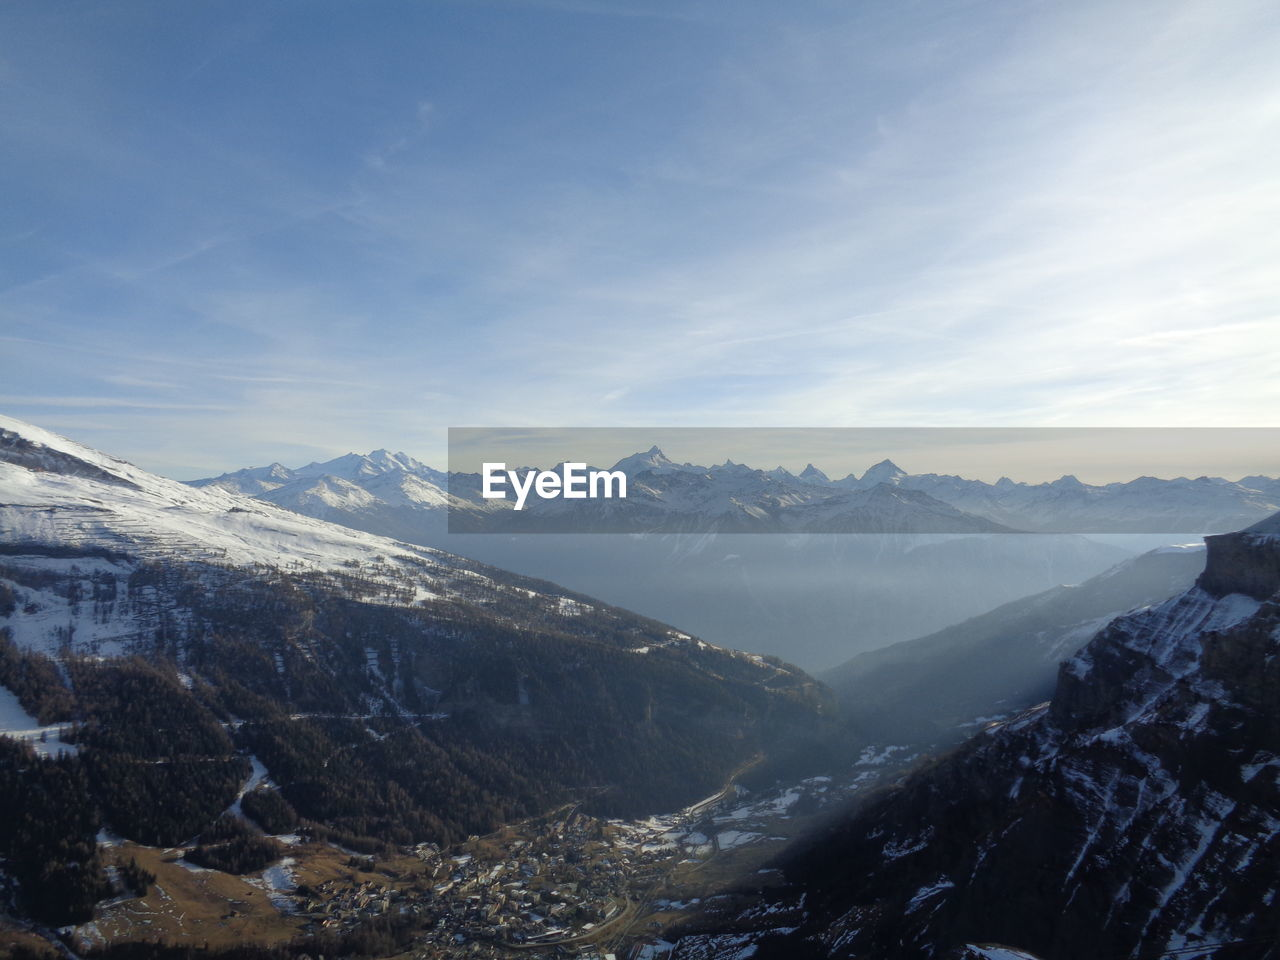 mountain, sky, scenics - nature, beauty in nature, environment, mountain range, landscape, snow, cold temperature, tranquil scene, tranquility, cloud - sky, winter, non-urban scene, nature, no people, snowcapped mountain, day, idyllic, mountain peak, outdoors, range